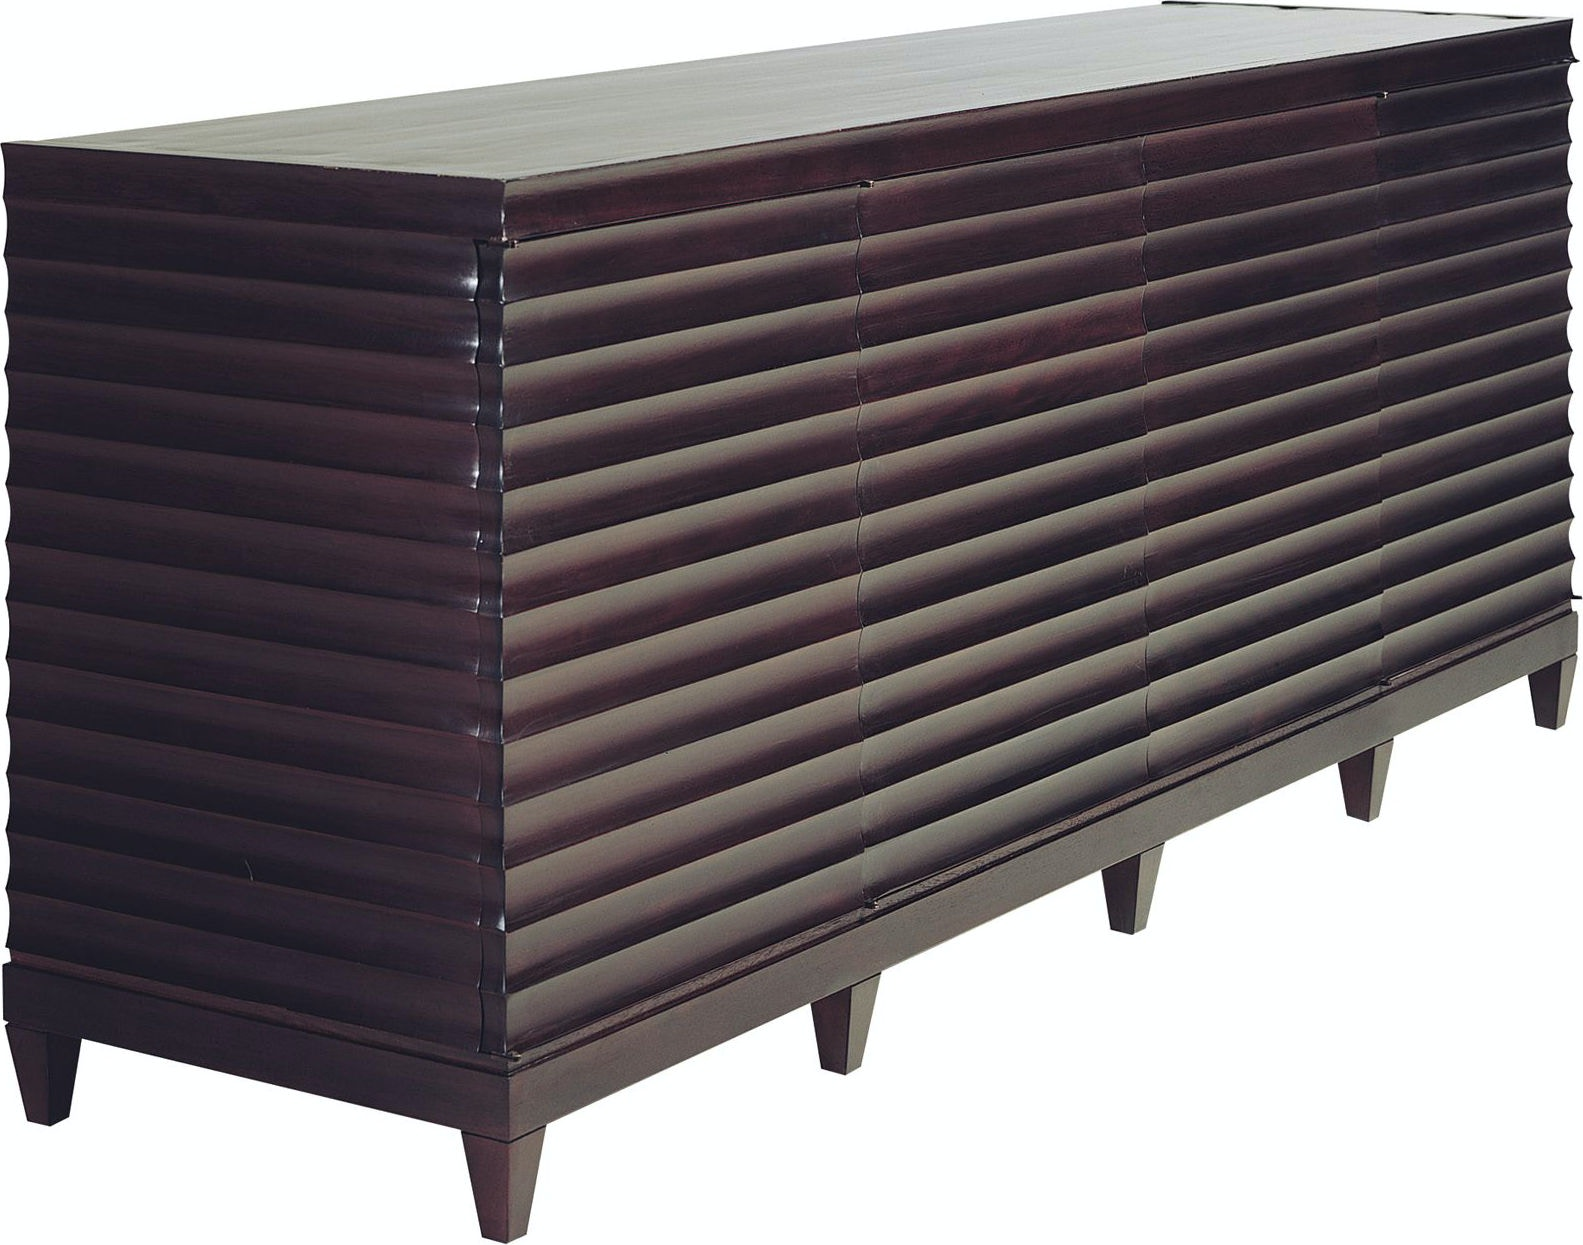 Baker Furniture Barbara Barry Fluted Low Cabinet 3400